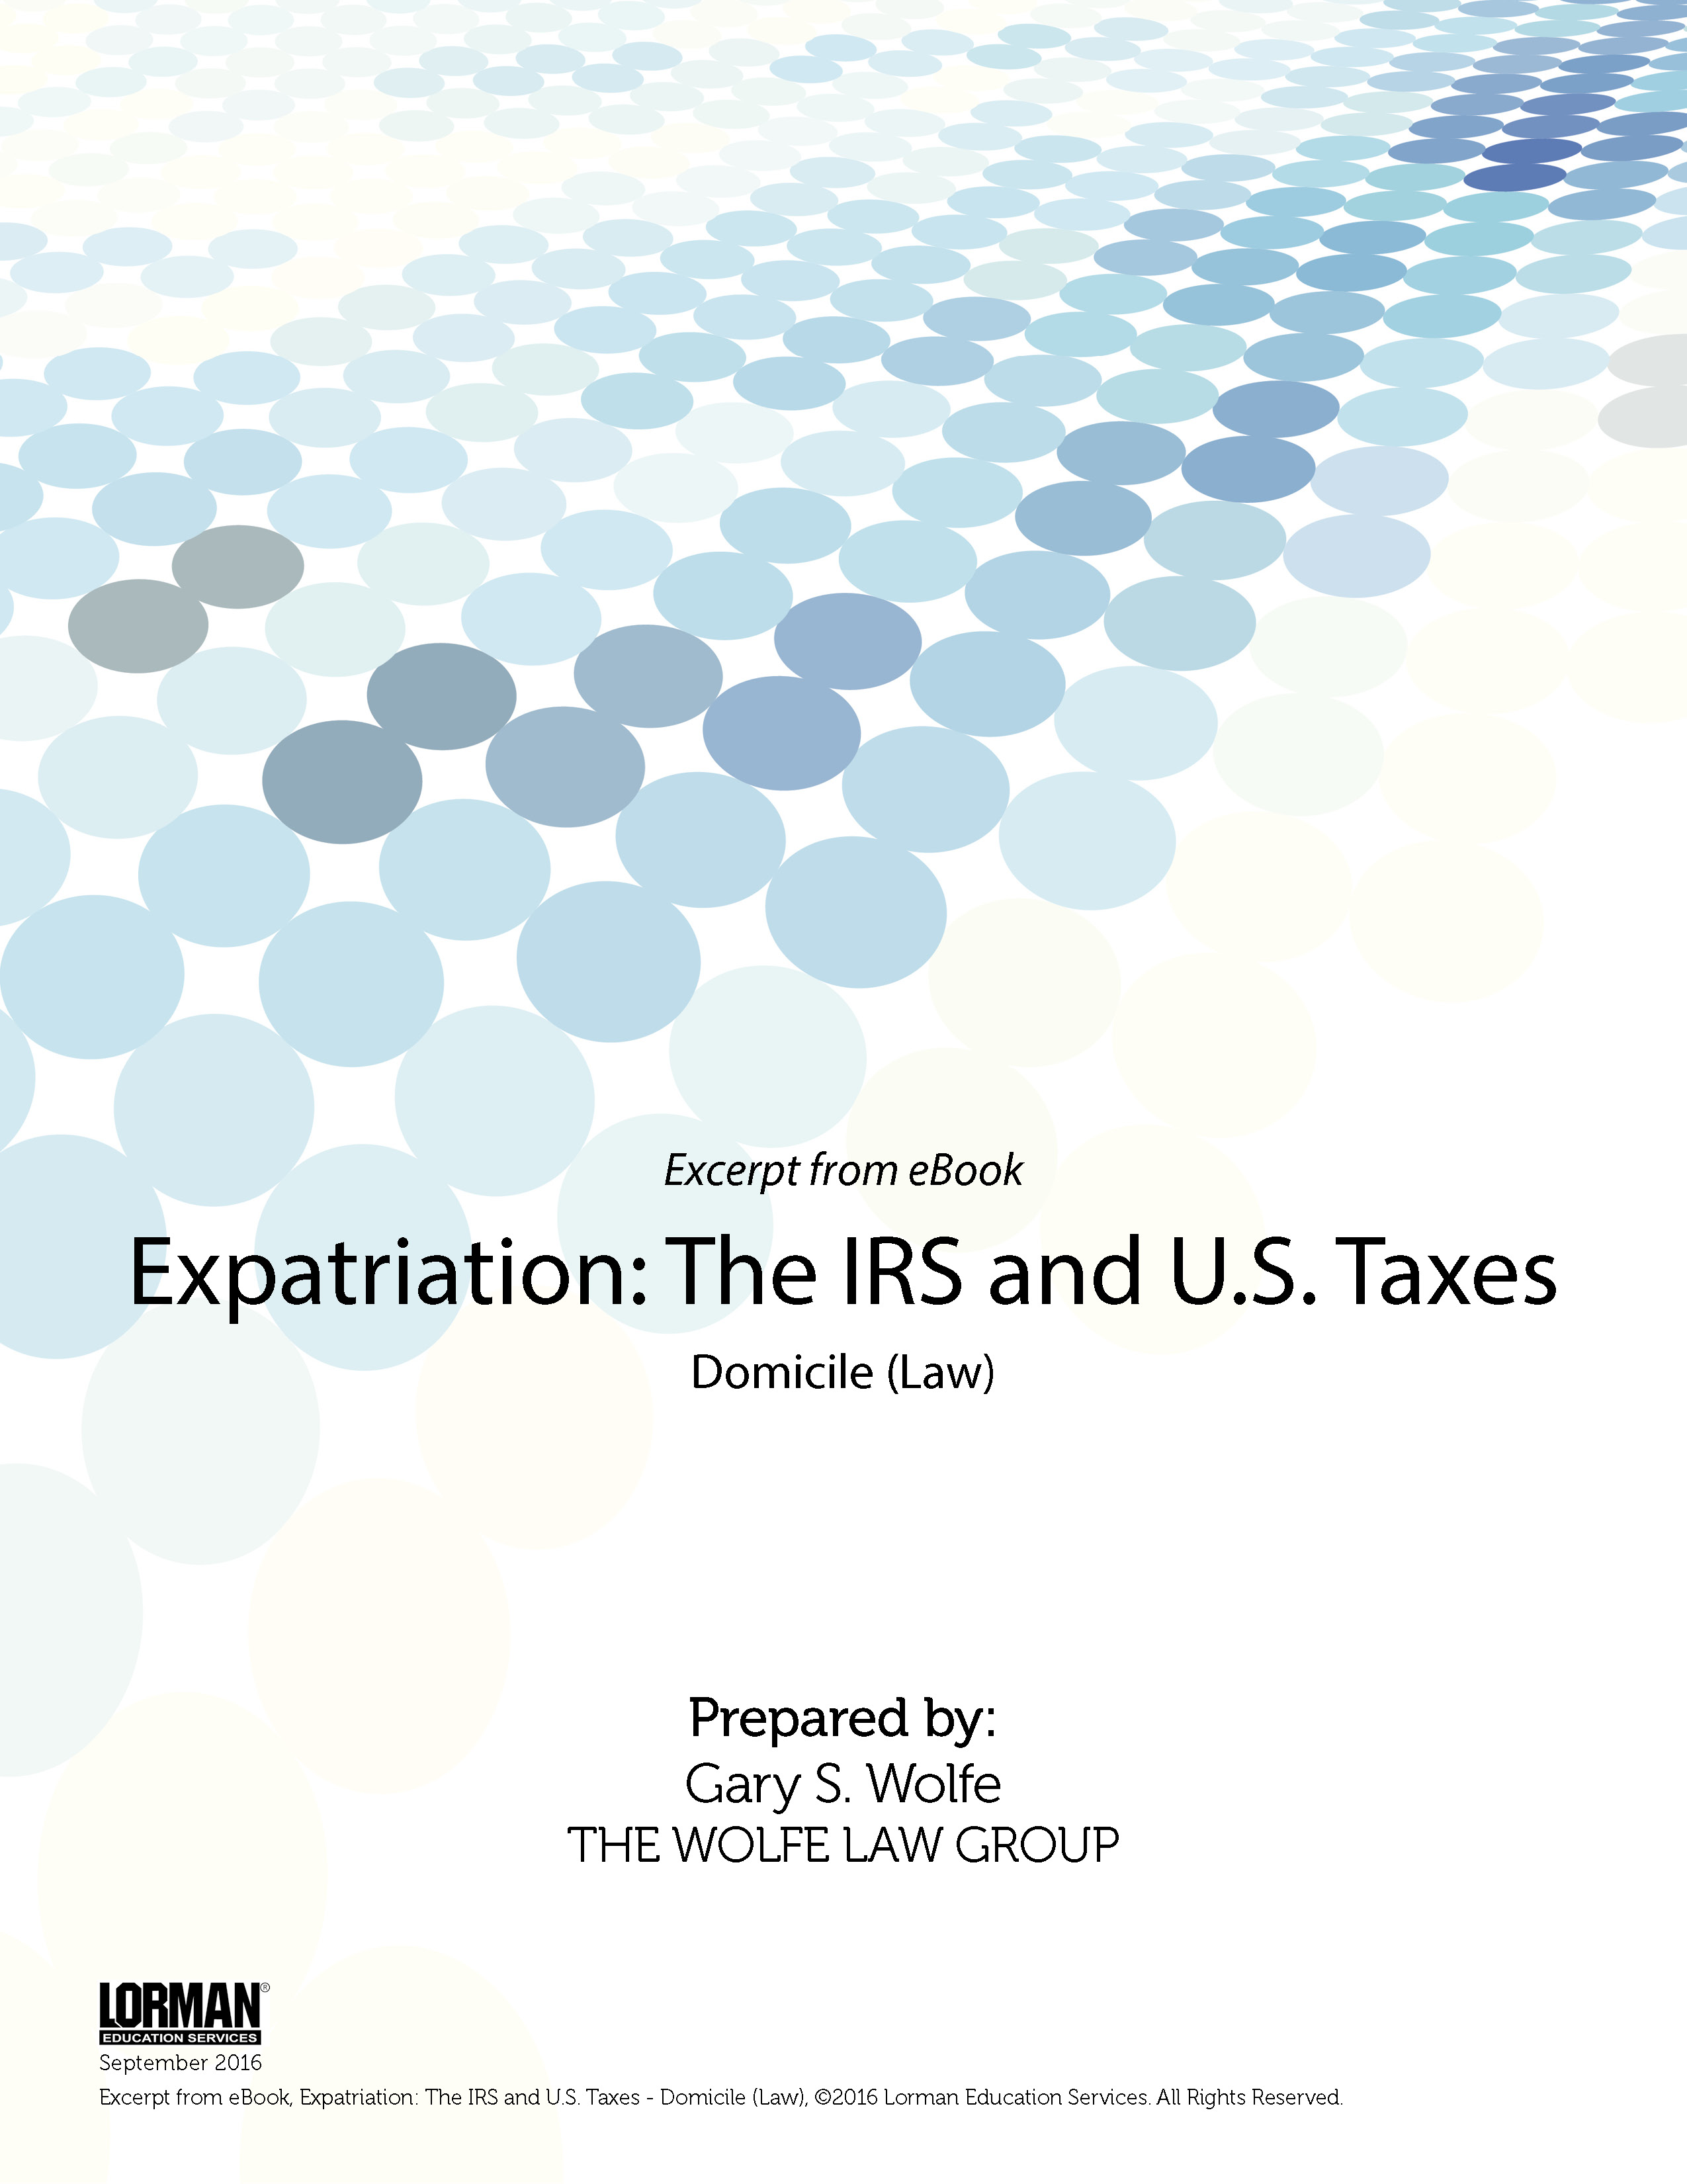 Expatriation - The IRS and U.S. Taxes - Domicile (Law)